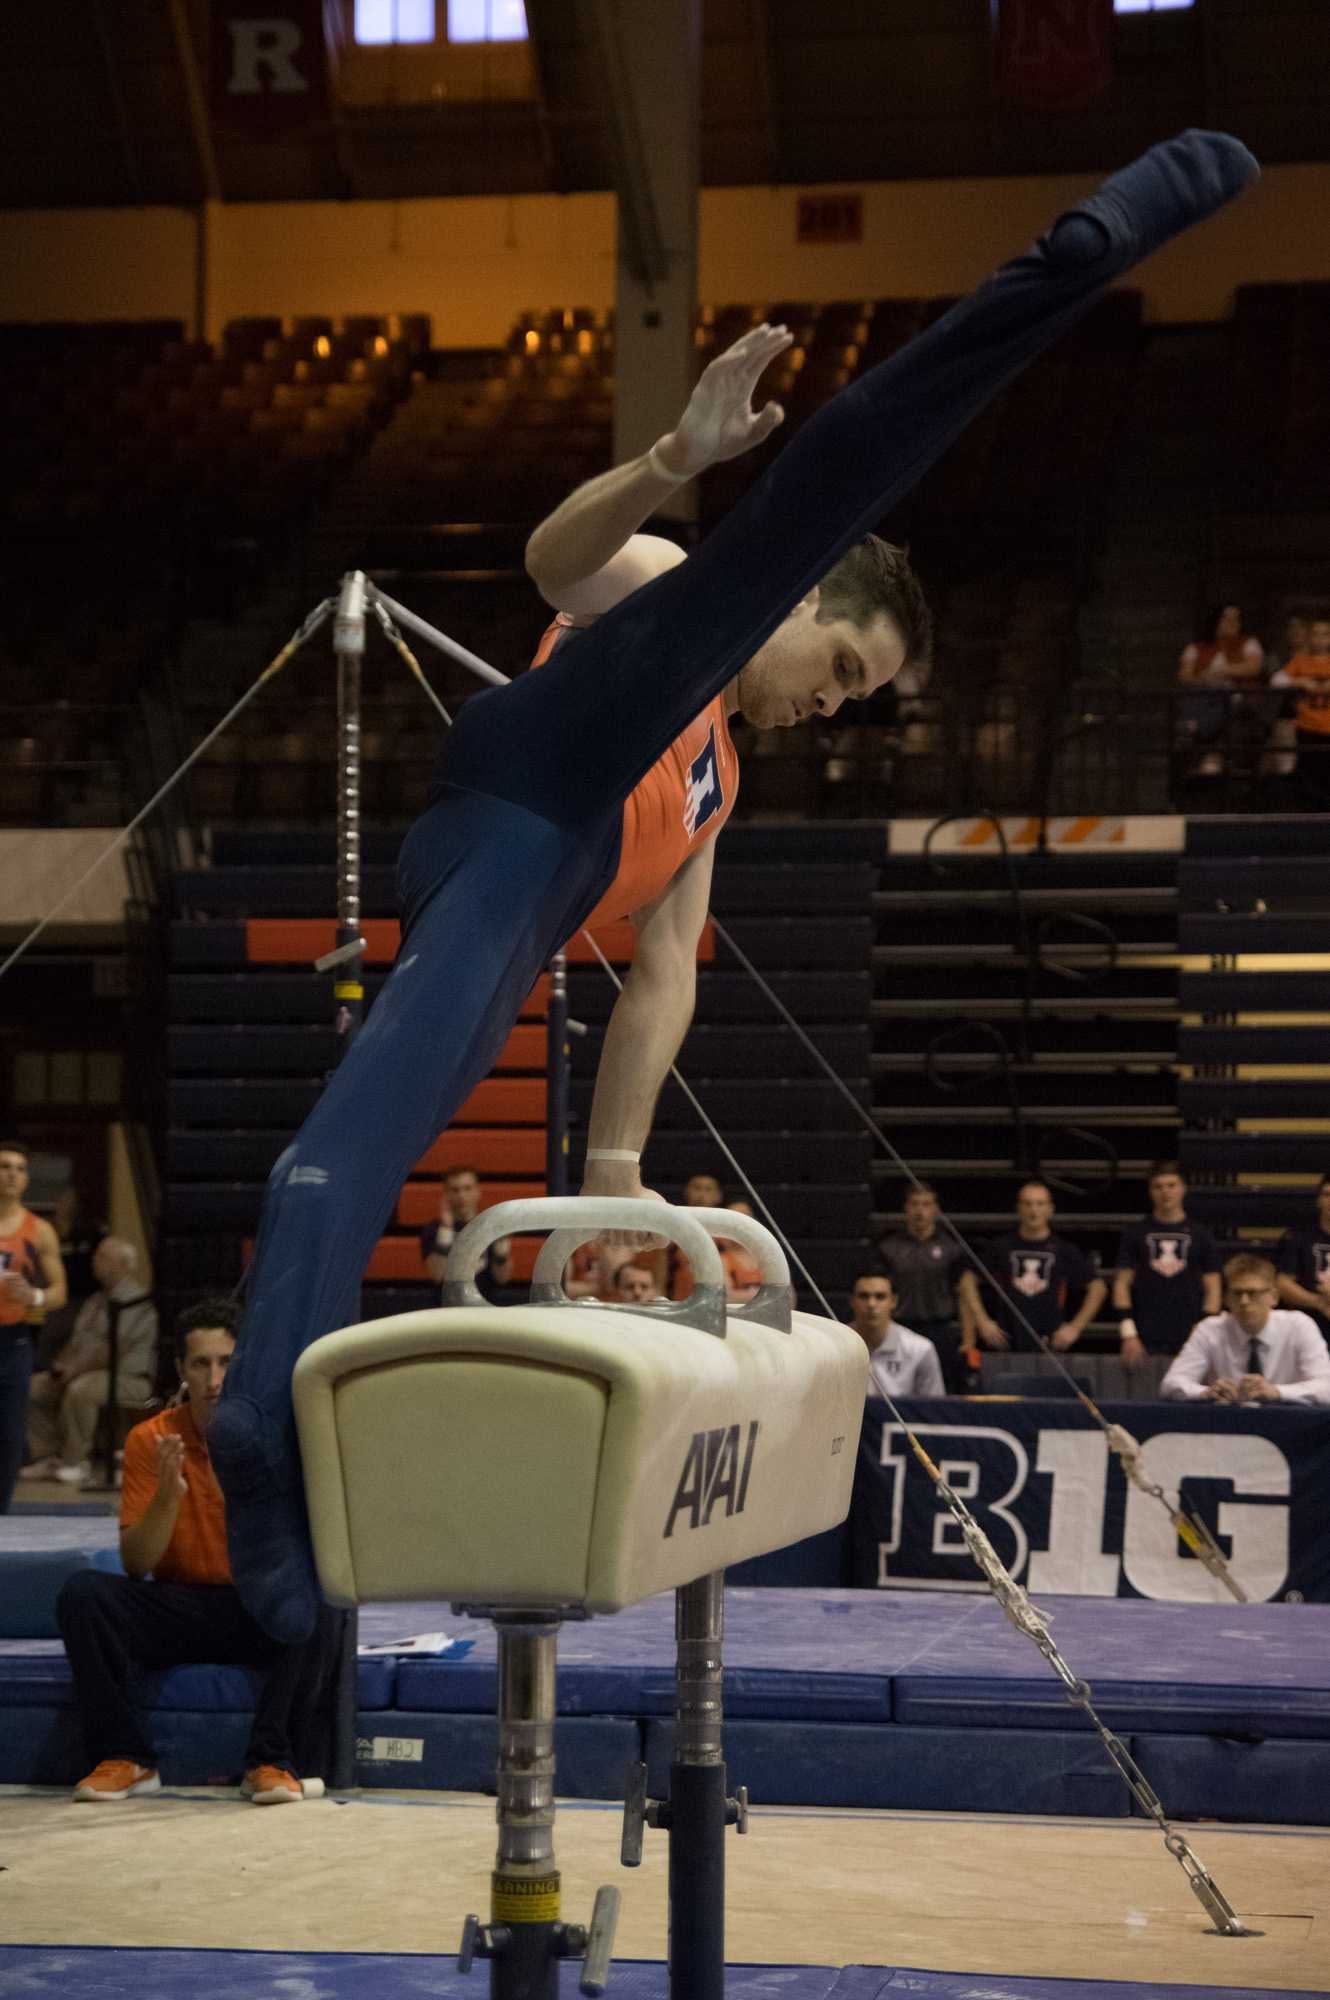 Illinois' Logan Bradley performs his routine on the pommel horse at the meet against Michigan on March 12, 2016.